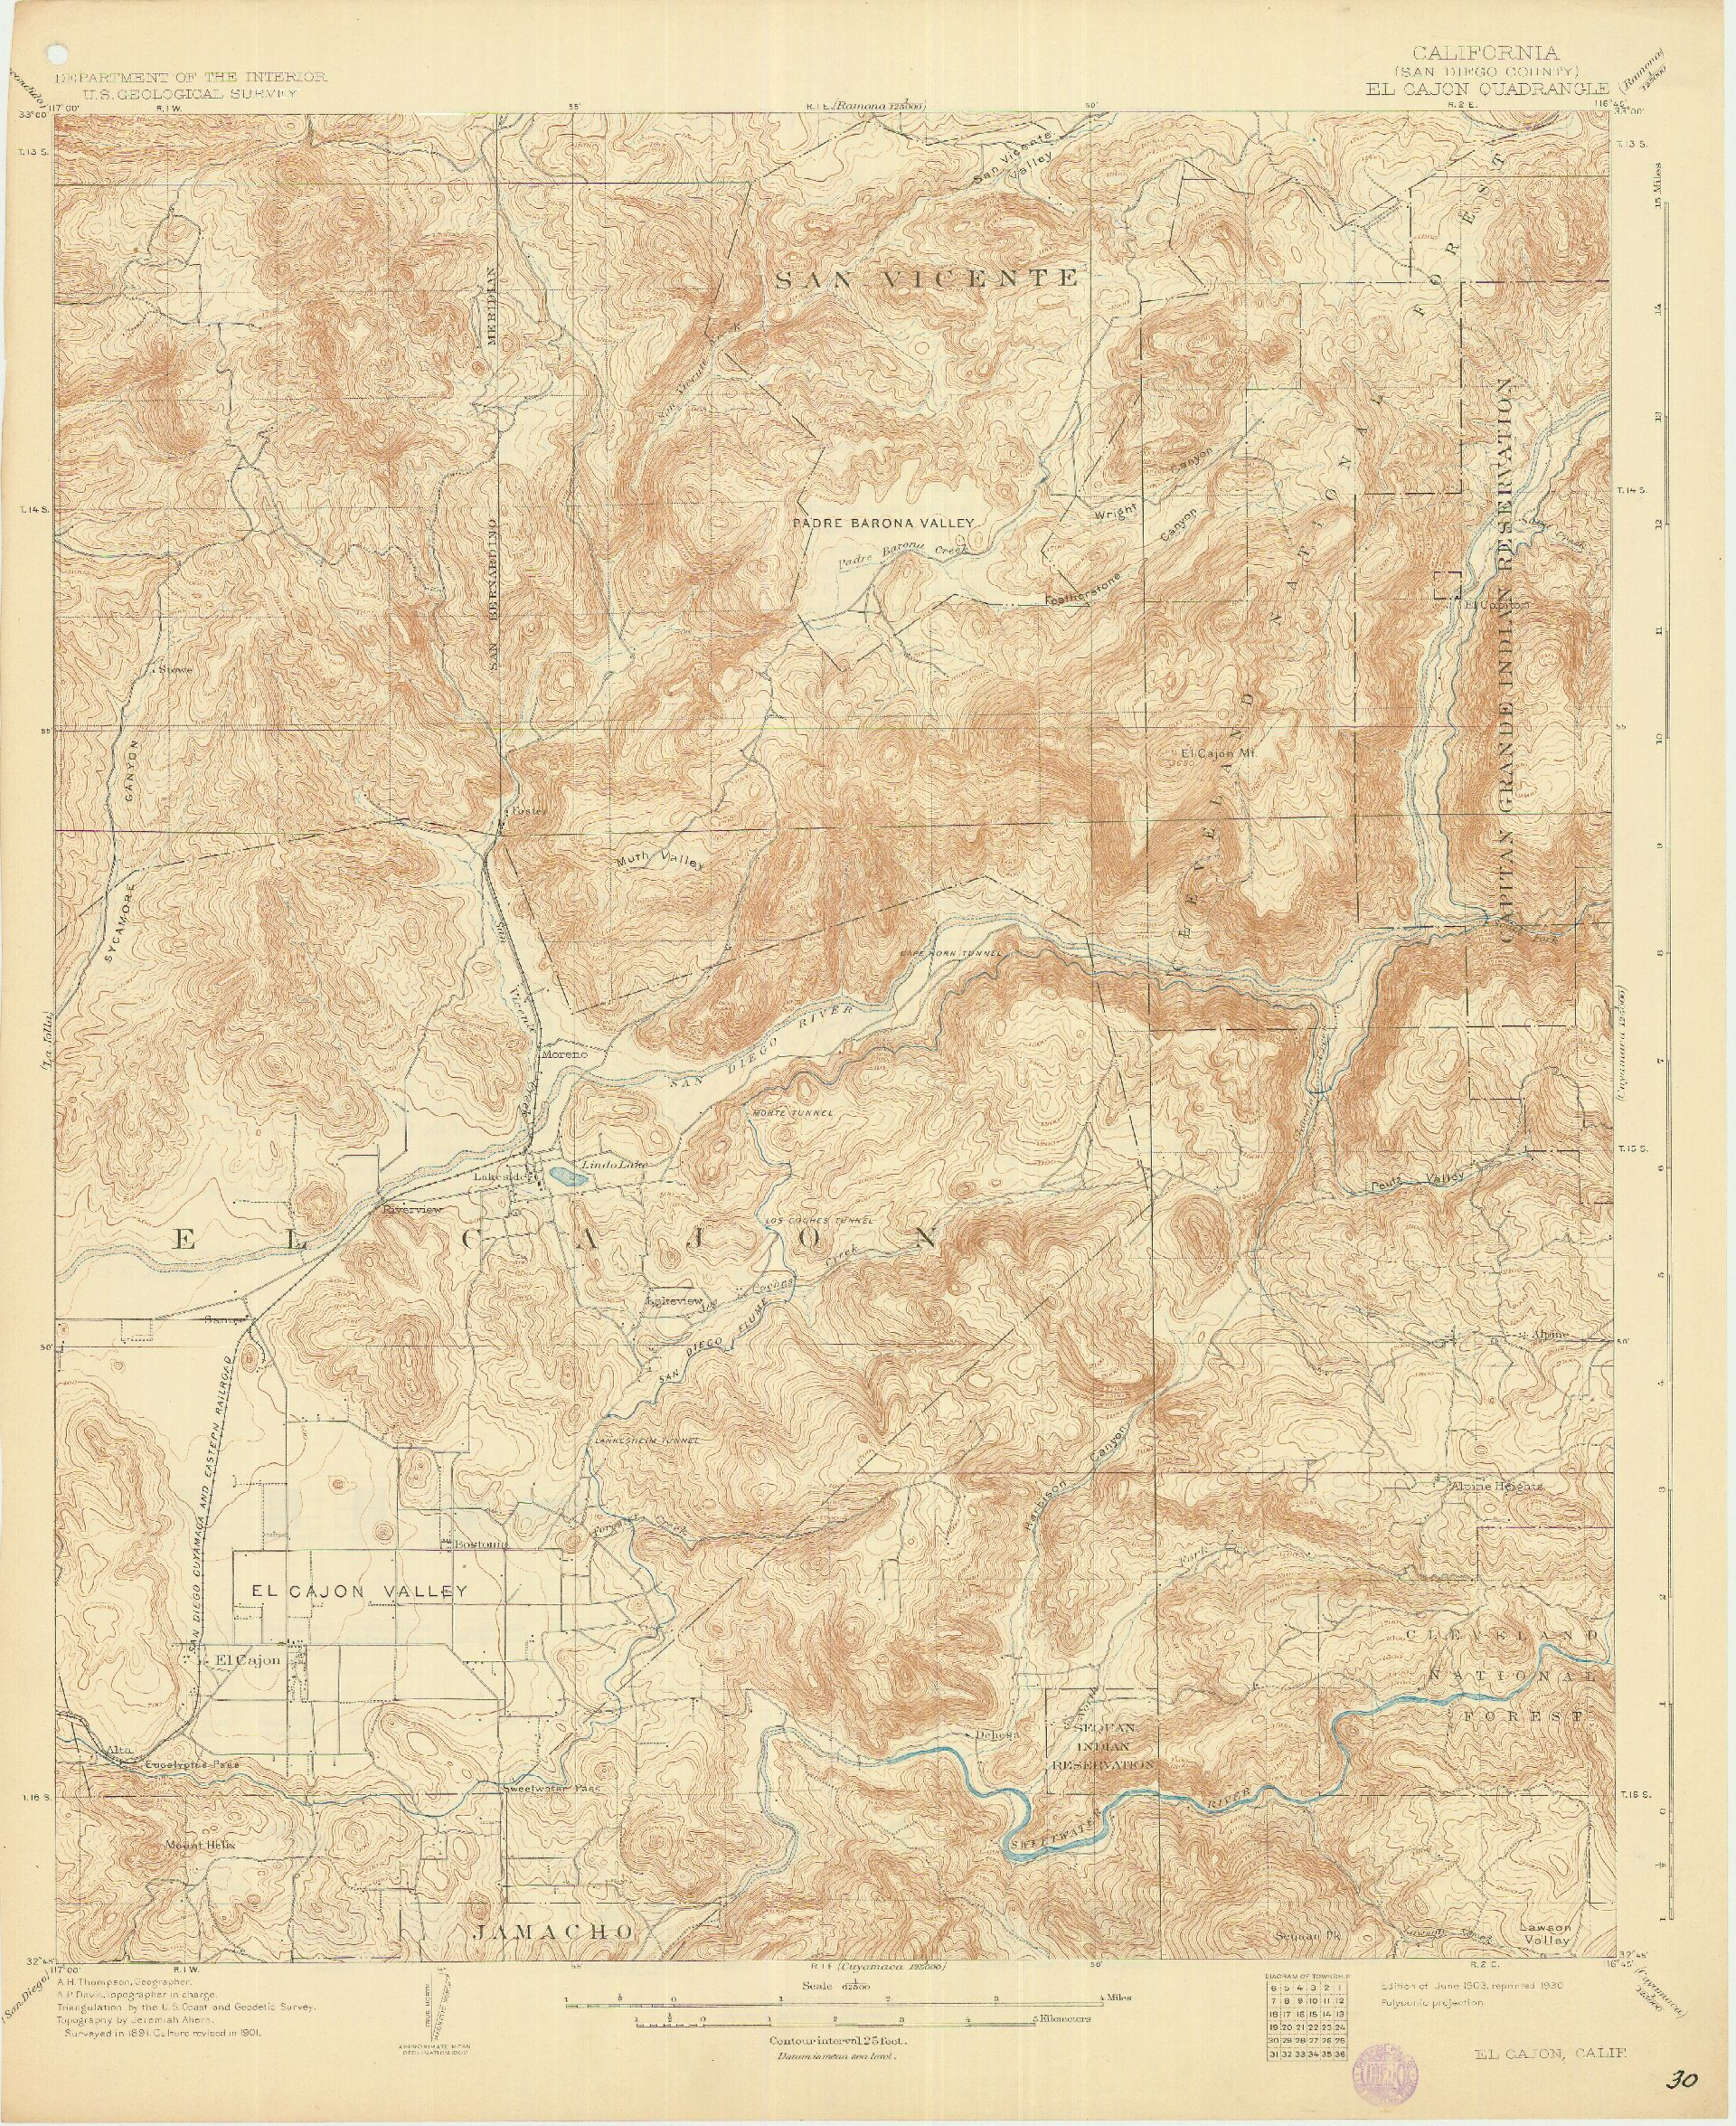 SDAG - Online Historical Topographic Maps, San go County Historic Topographic Maps on